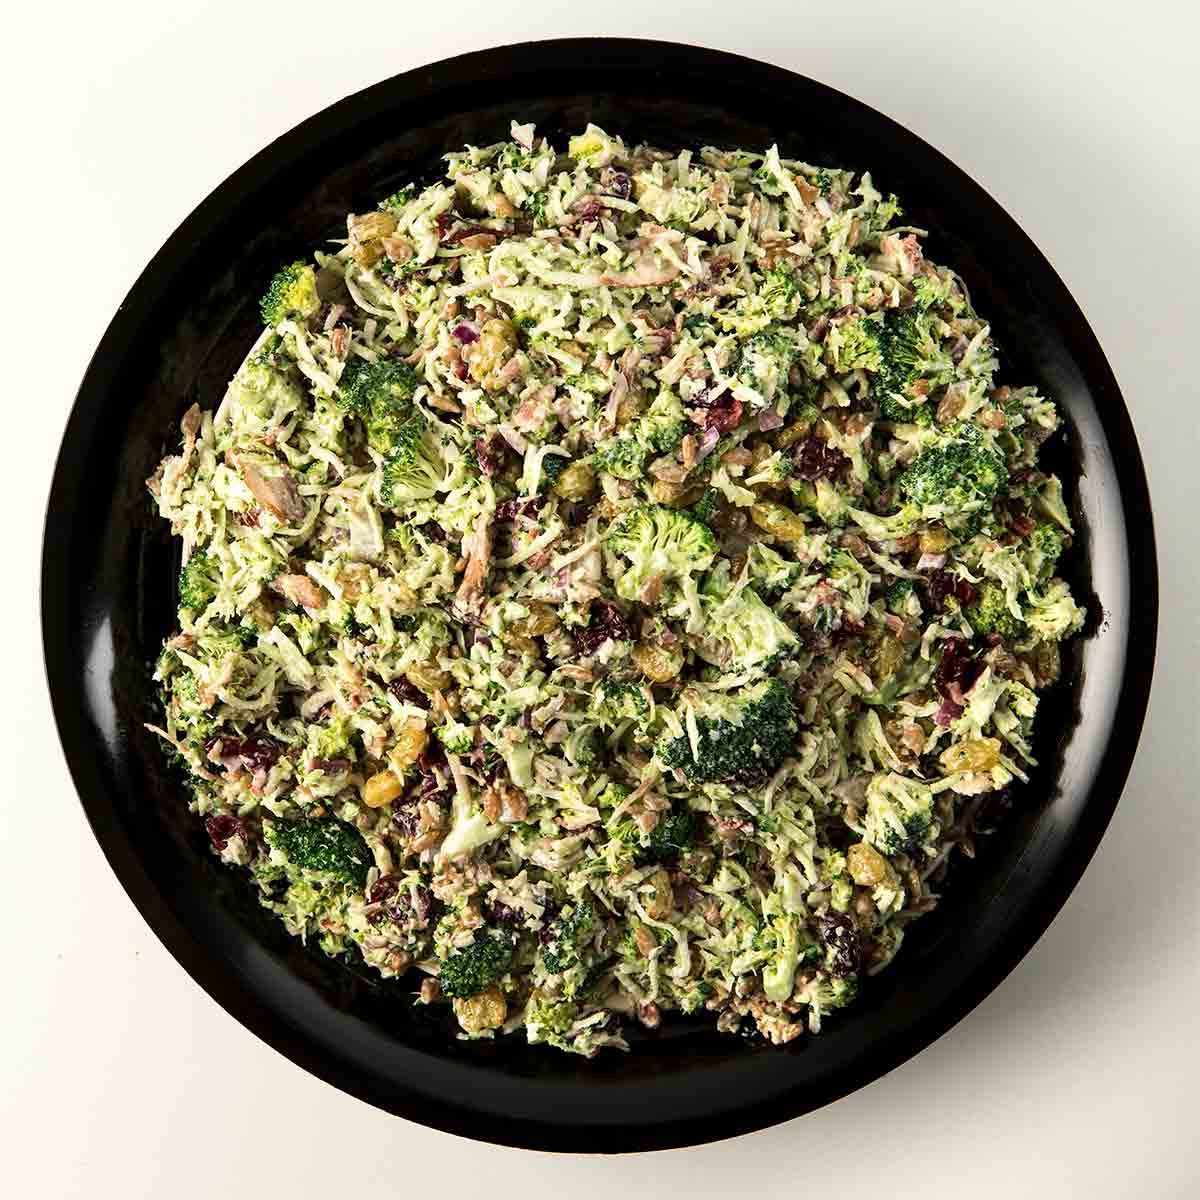 Broccoli Bacon Coleslaw